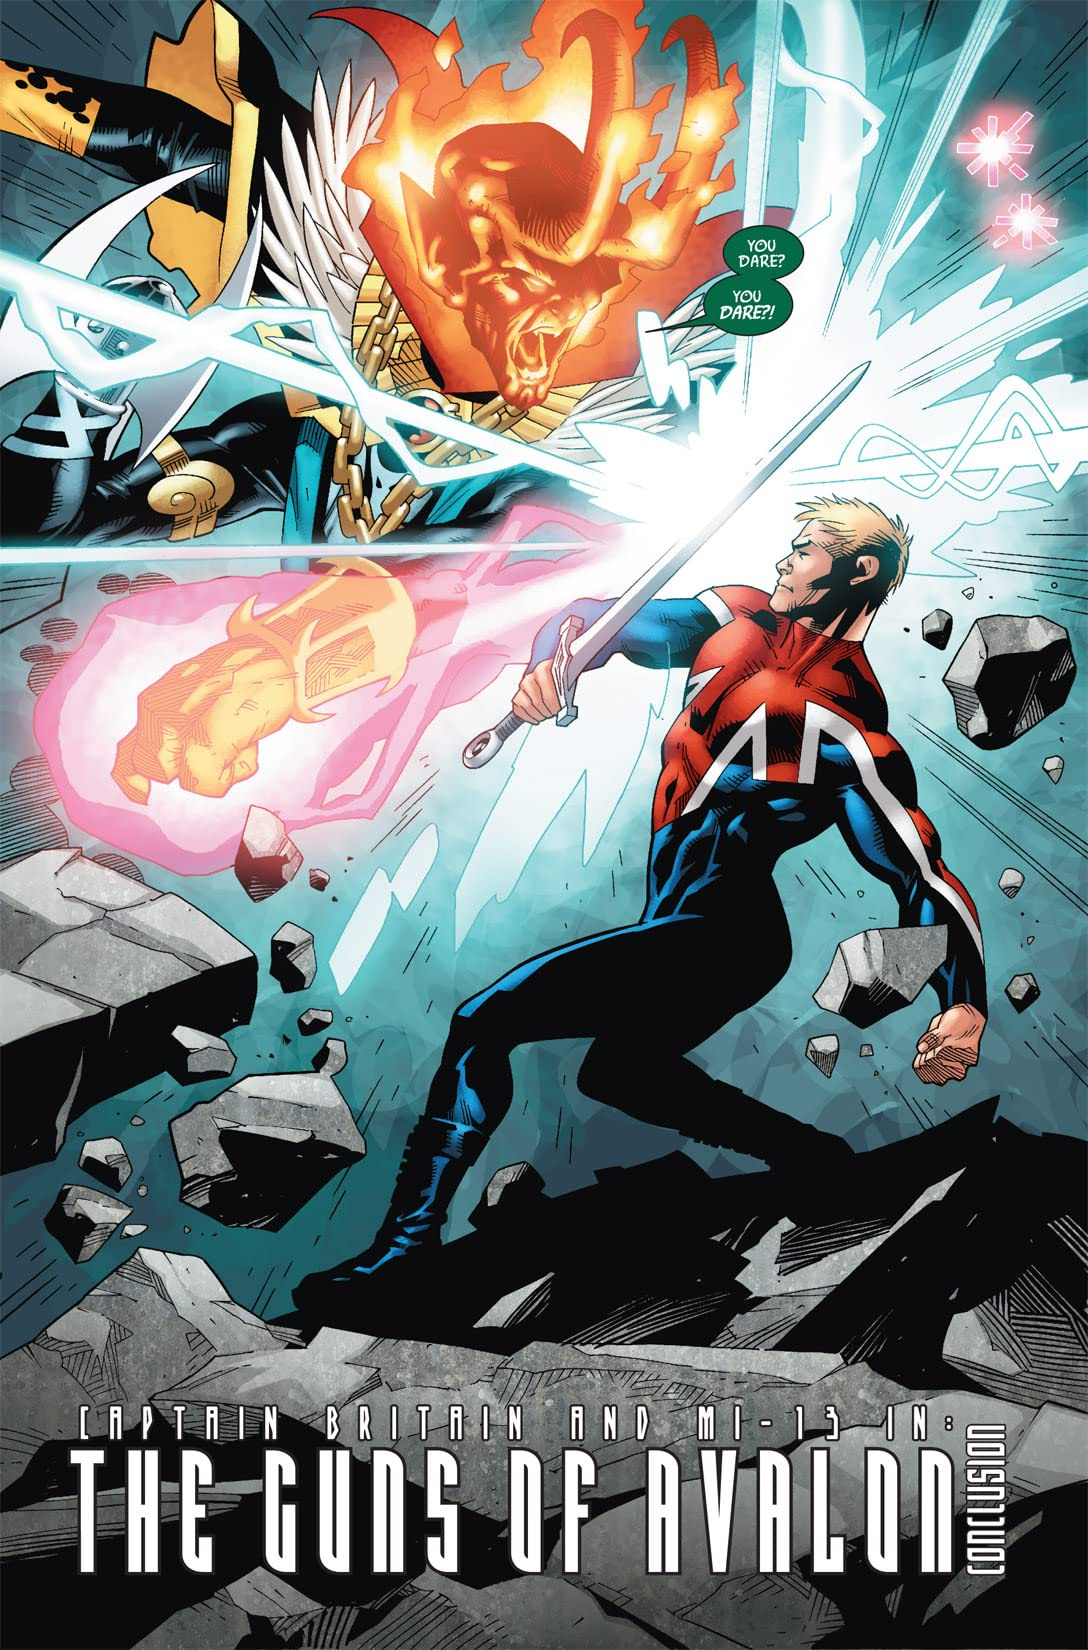 Captain Britain and MI: 13 #4